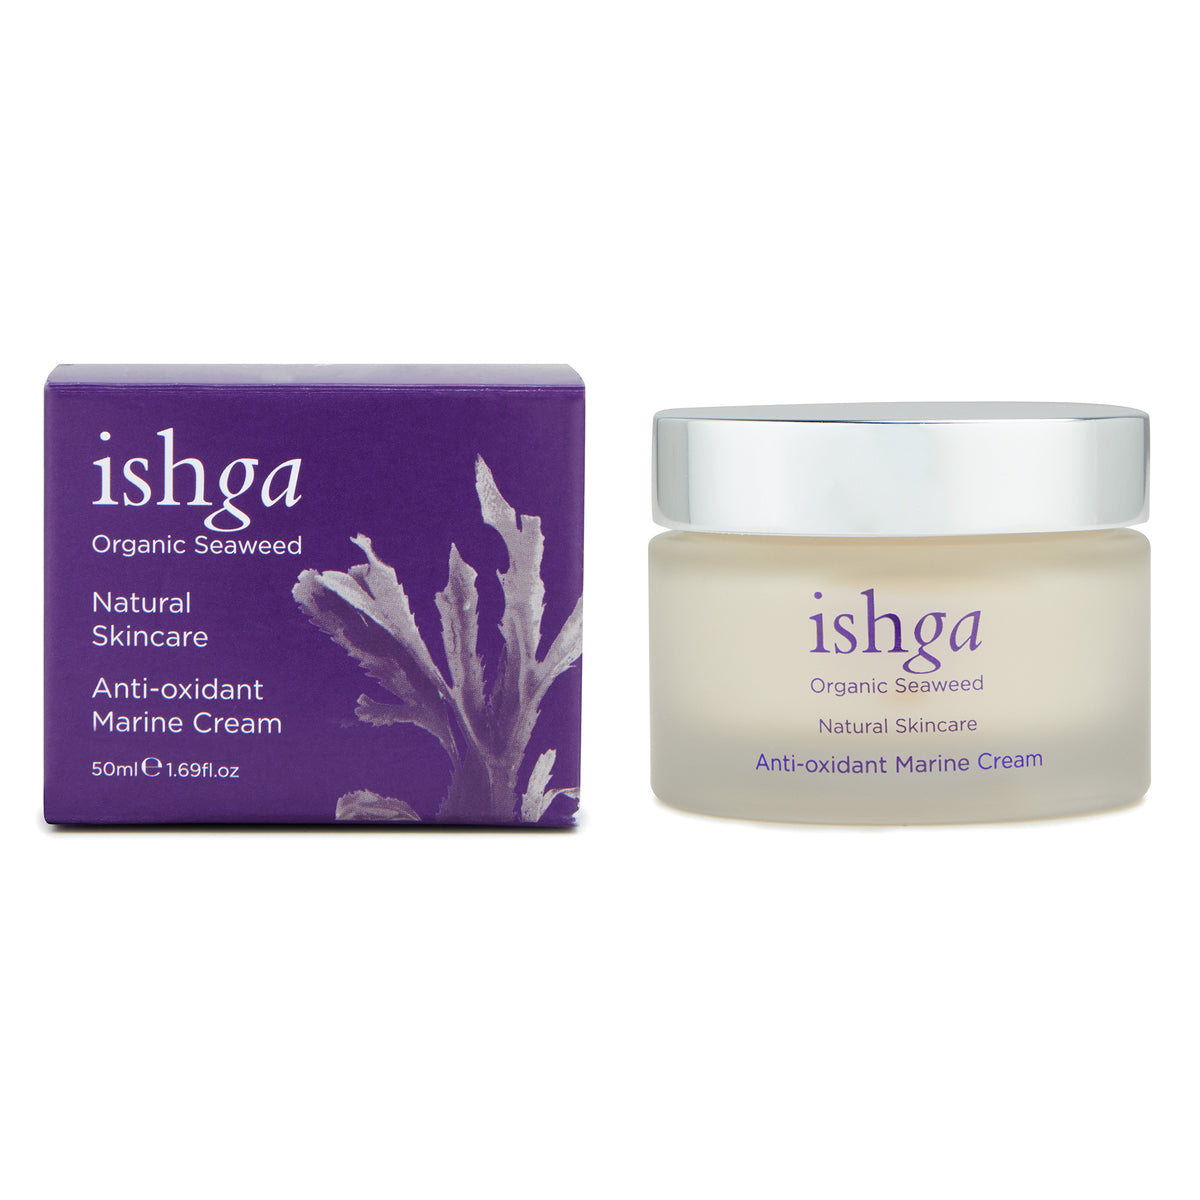 ishga Anti-oxidant Marine Face Cream